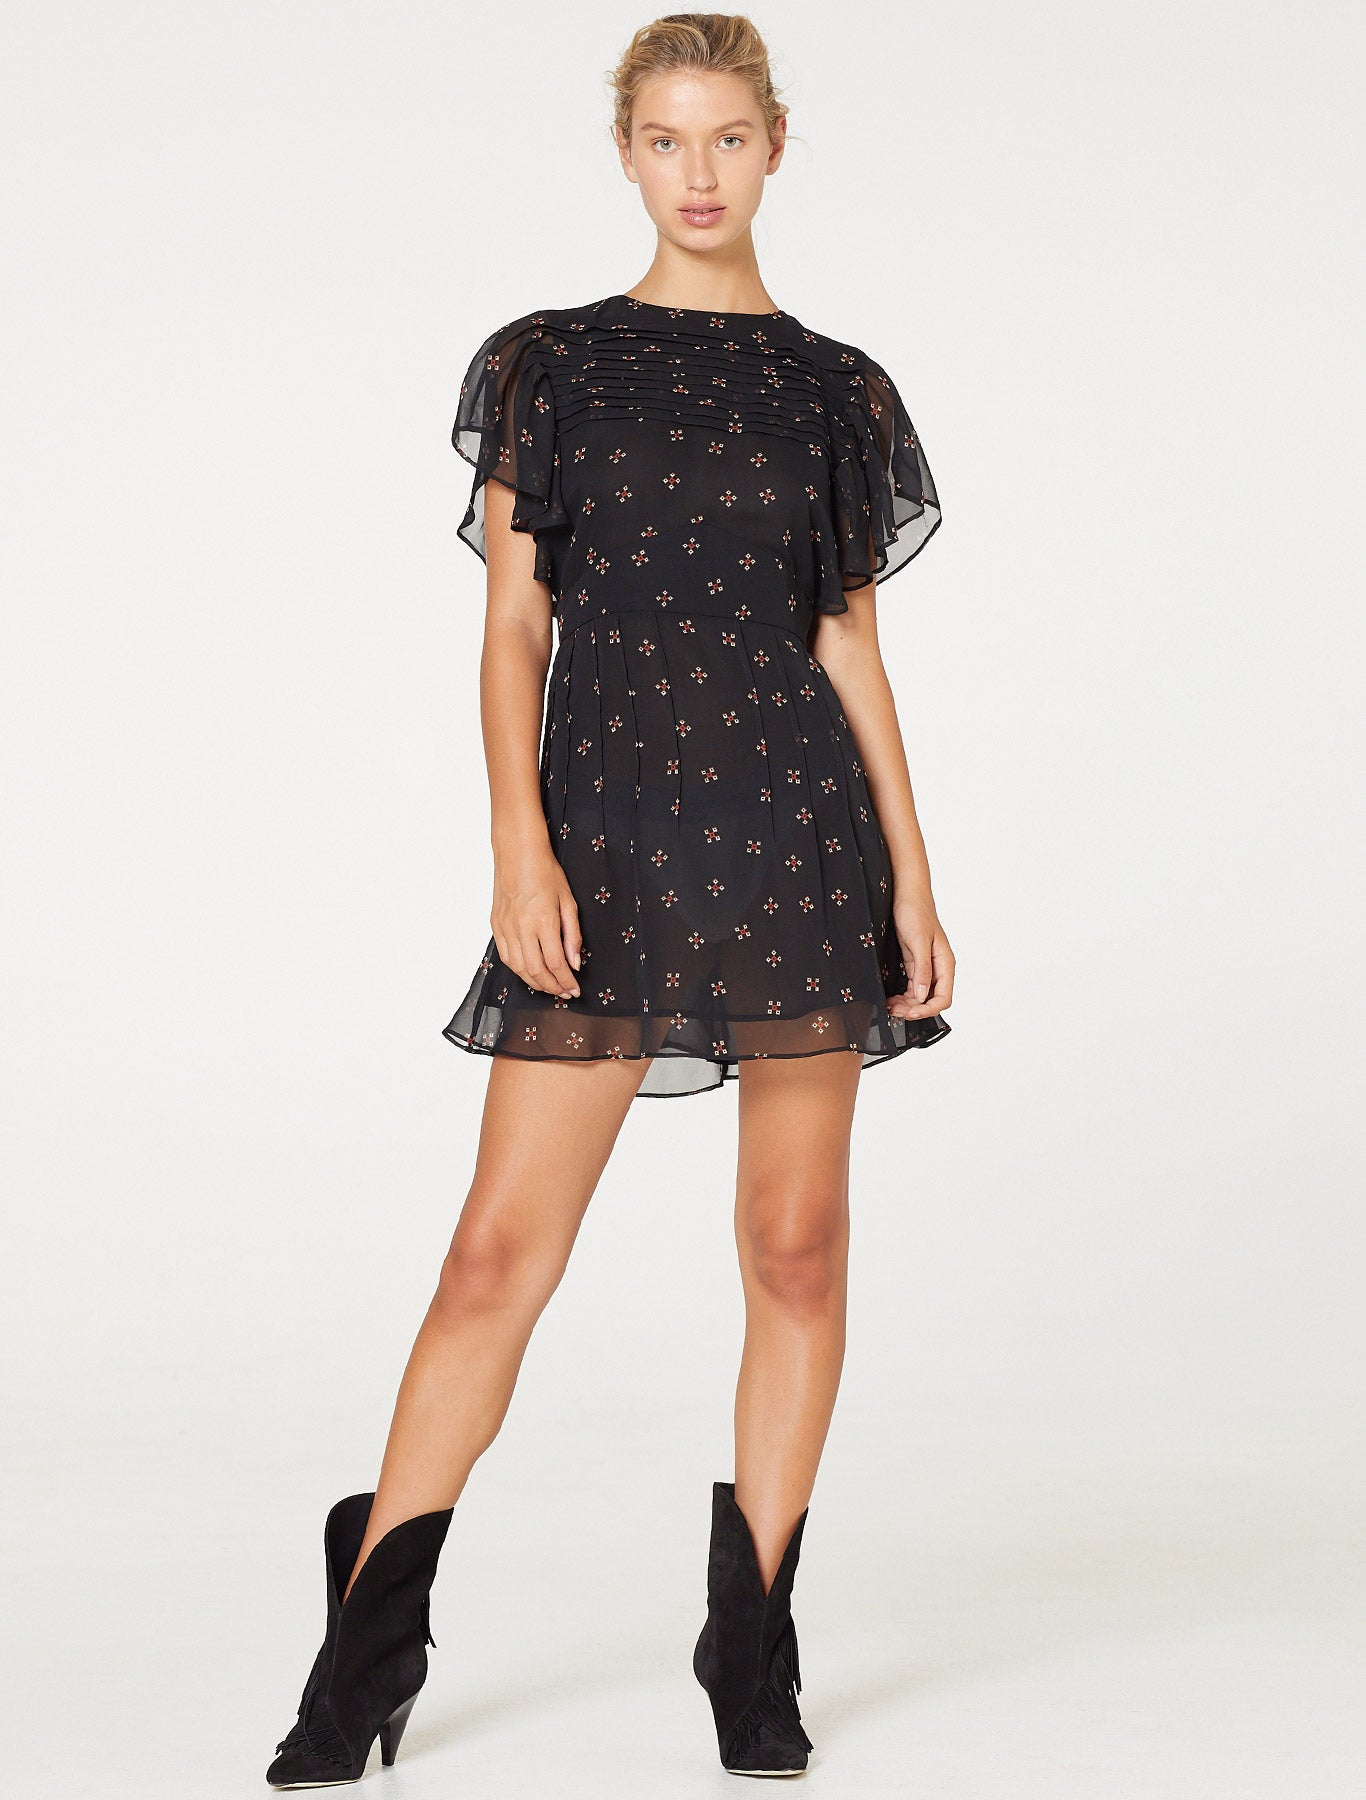 CAMBRIDGE MINI DRESS